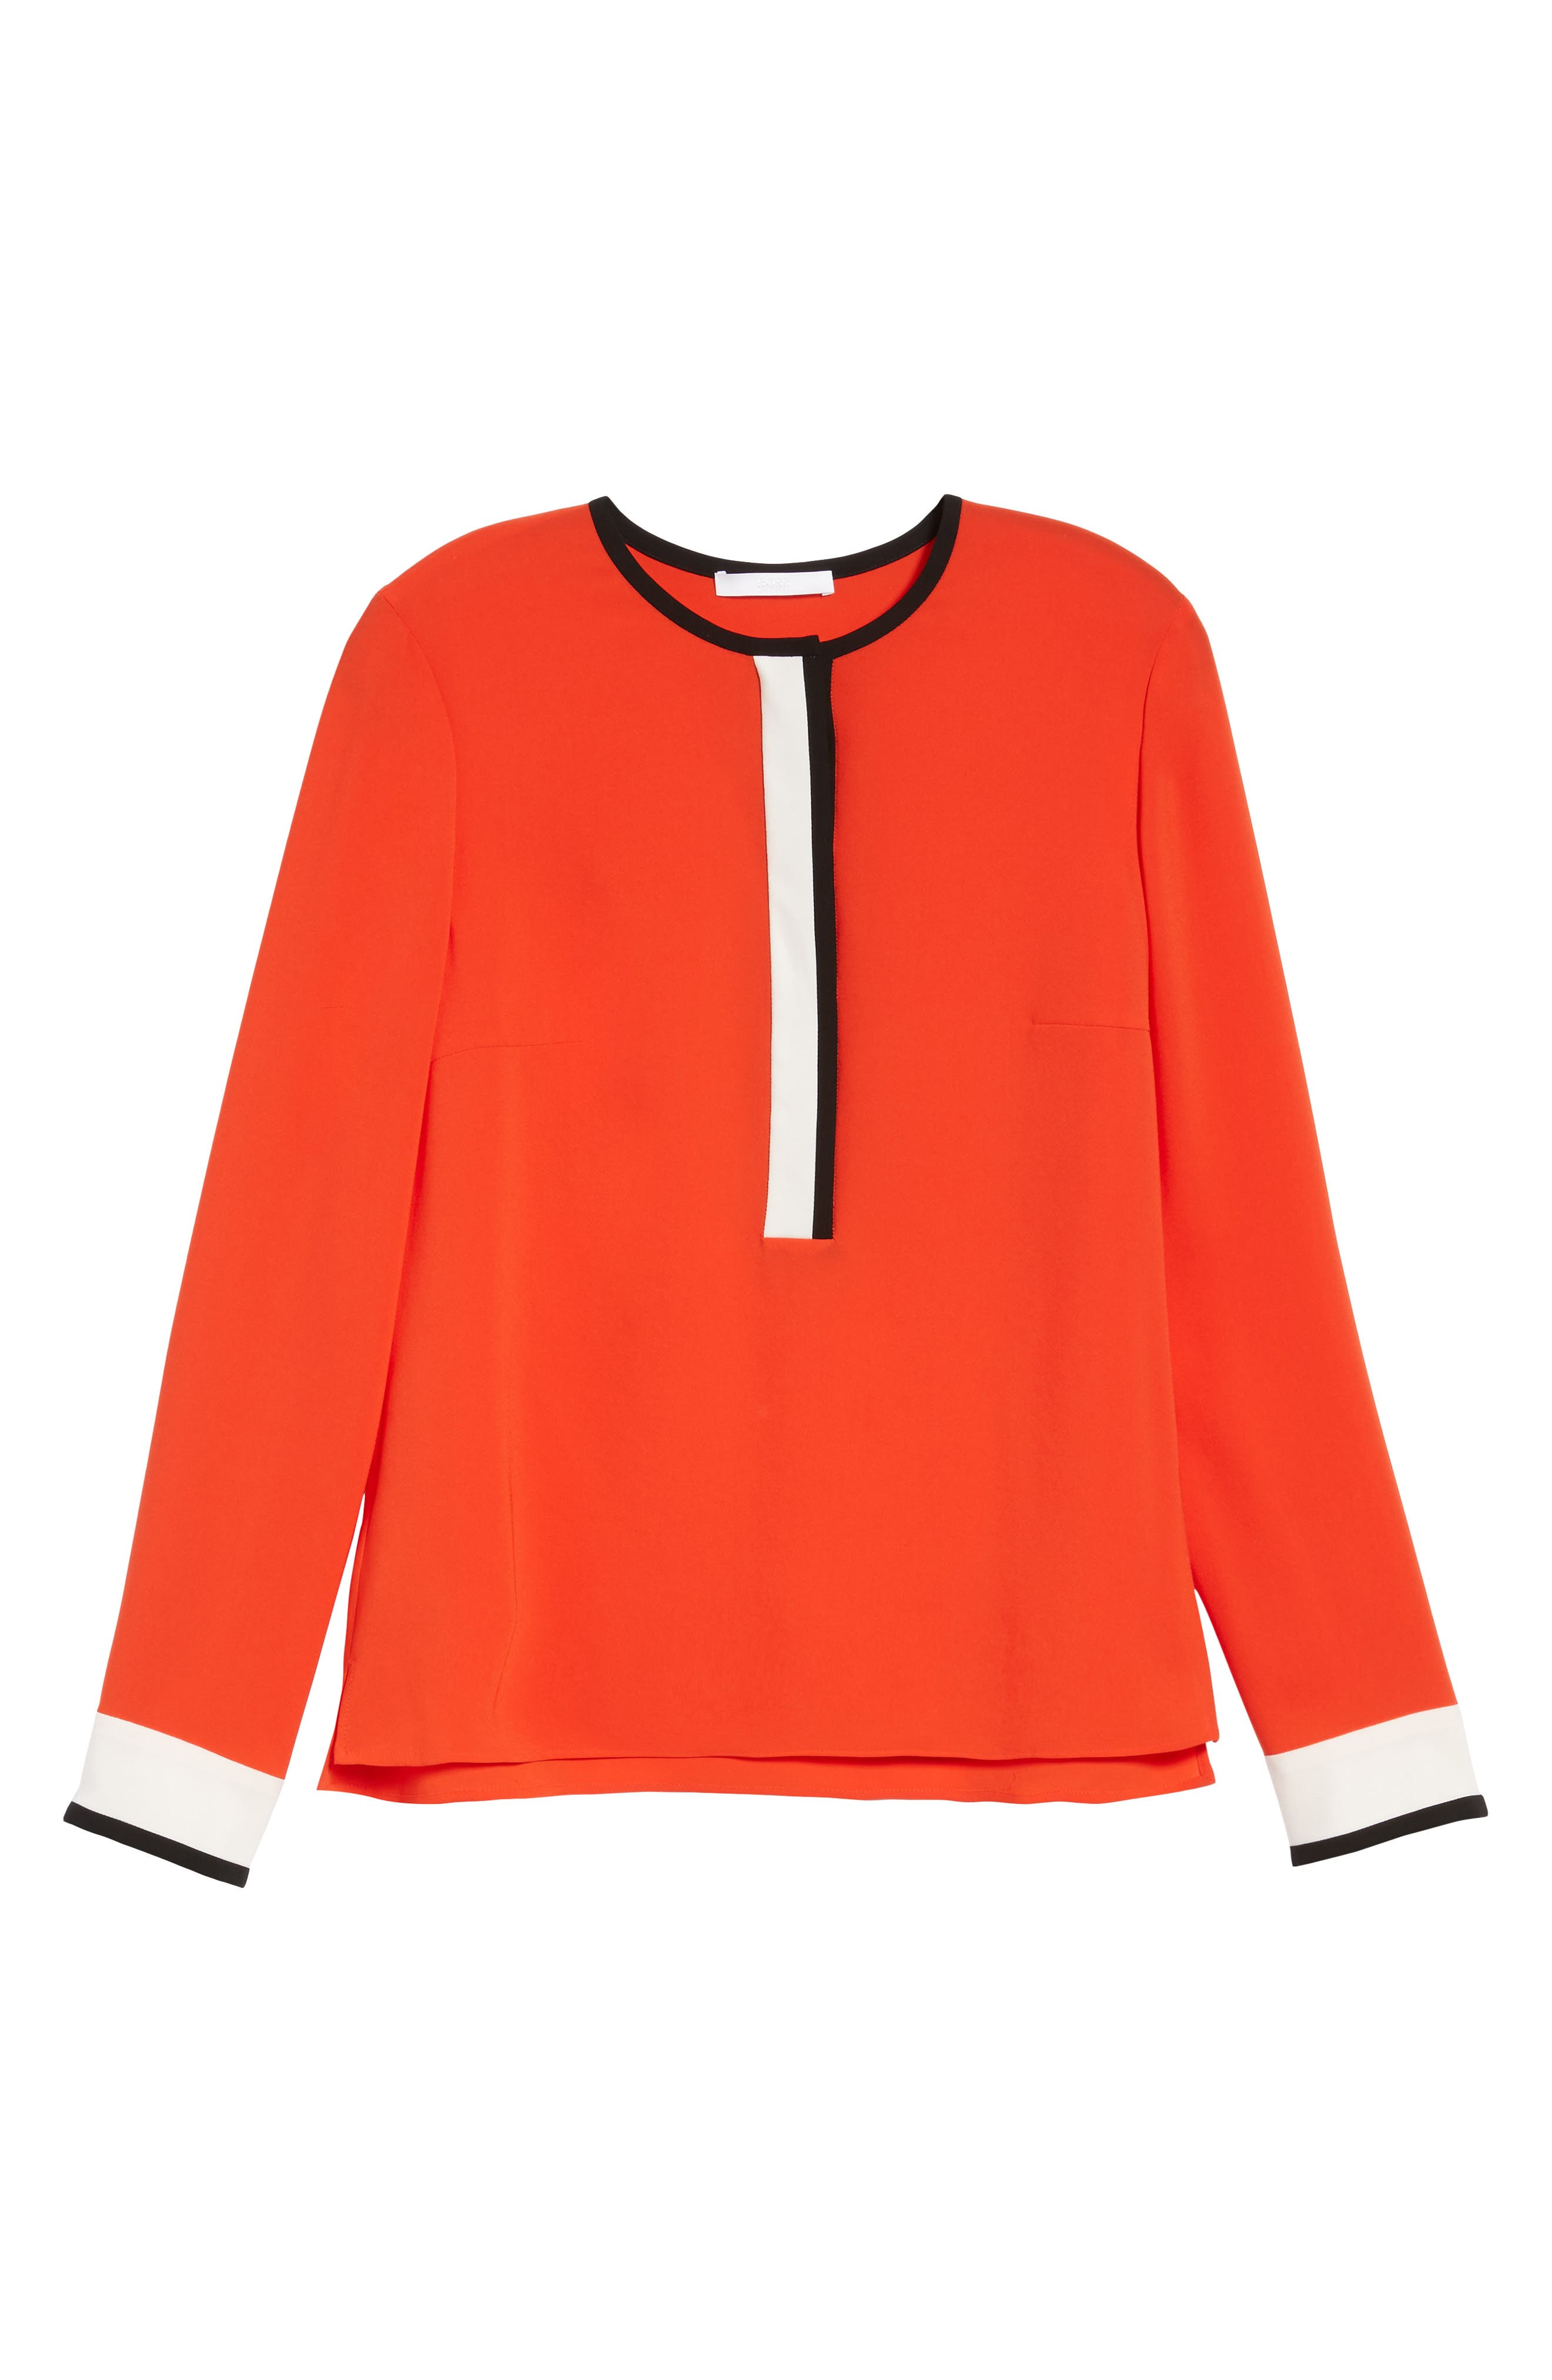 Isolani Colorblock Top,                             Alternate thumbnail 6, color,